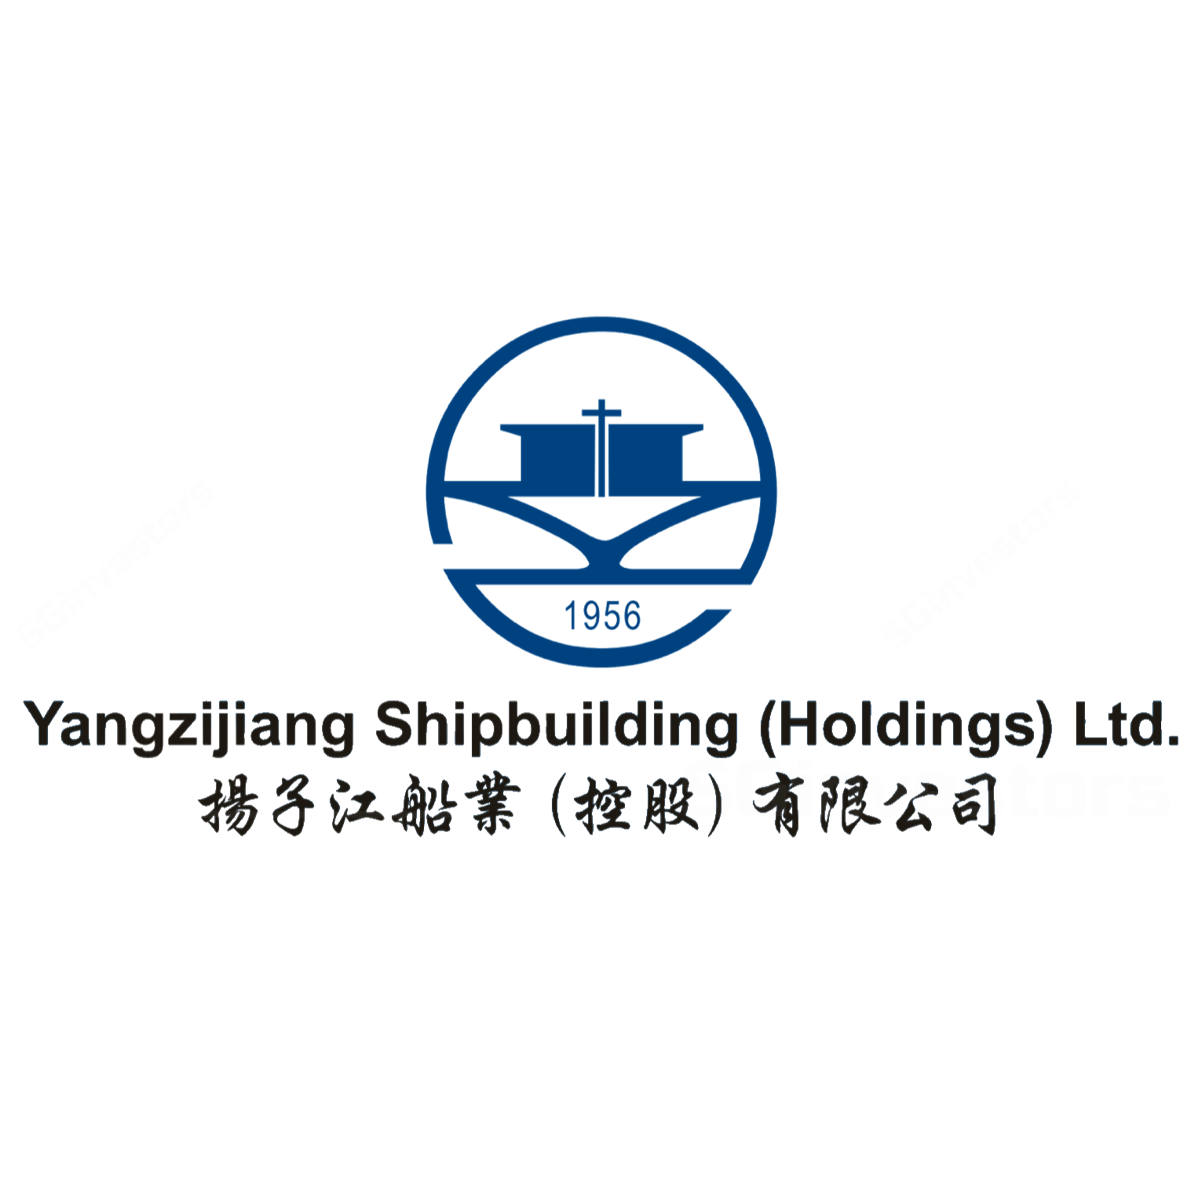 Yangzijiang Shipbuilding (YZJSGD SP) - UOB Kay Hian 2017-08-10: 2Q17 Earnings Beat Forecasts But Share Price Rise Is A Bridge Too Far; Downgrade To HOLD